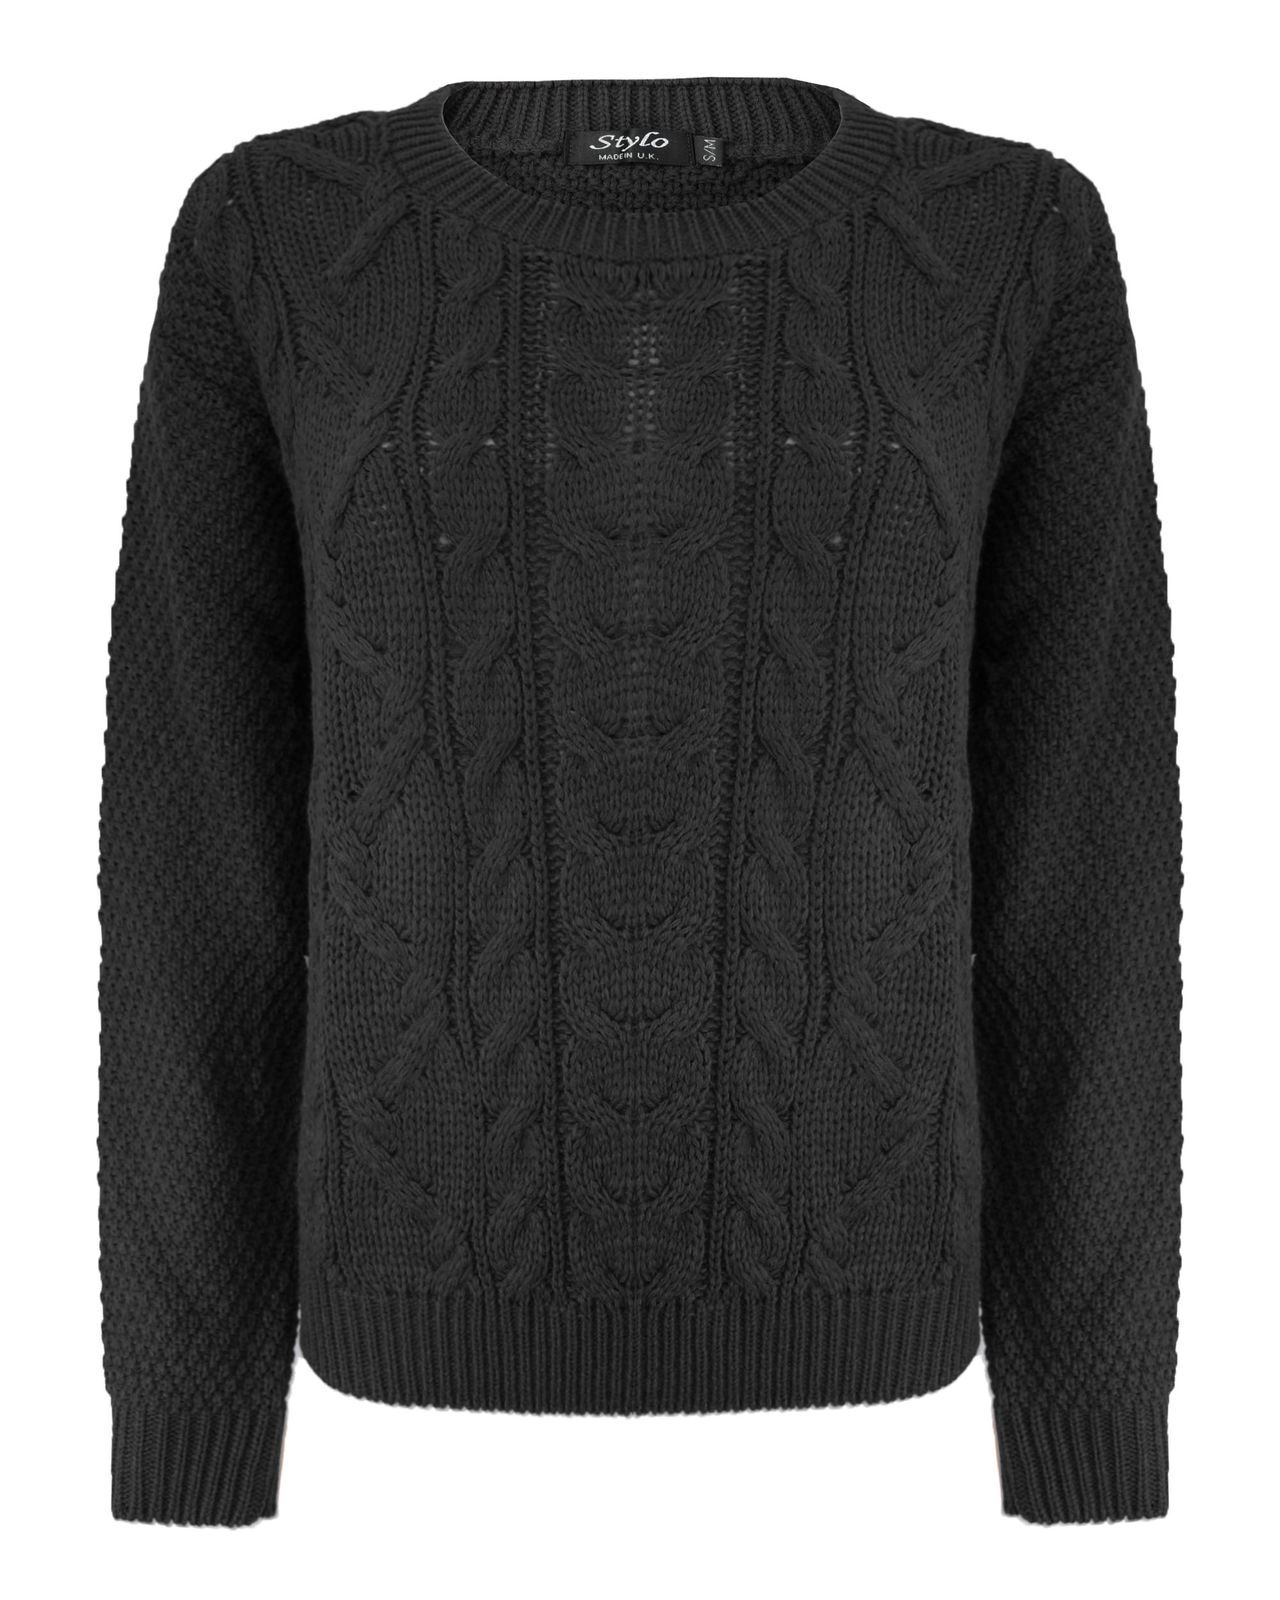 Ladies Women Cable Knit Long Sleeve Crew Neck Knitted Jumper Baggy ... c1fffb864